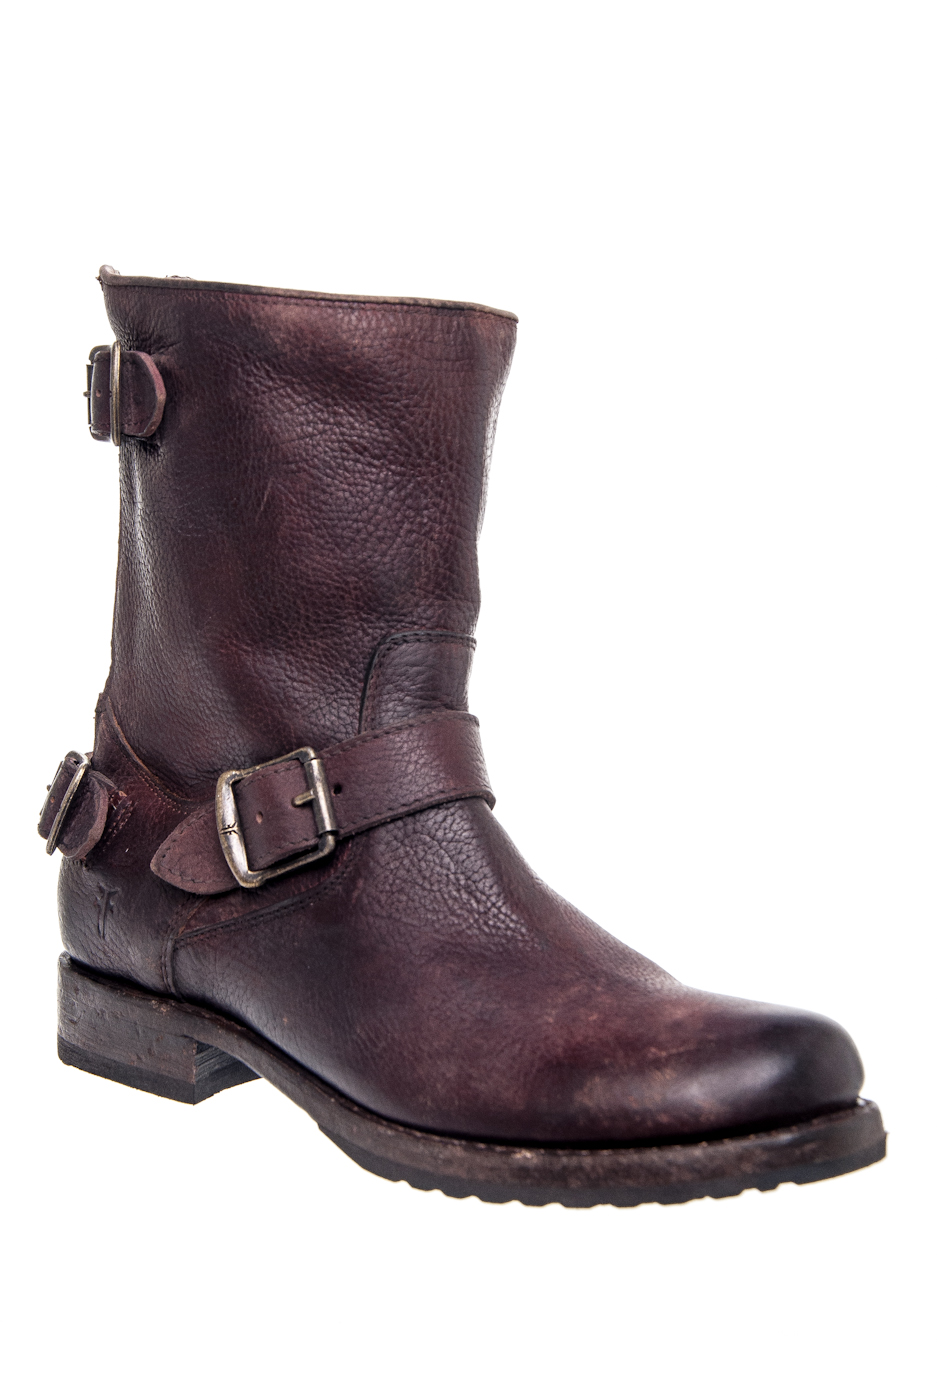 Frye Veronica Back Zip Short Low Heel Moto Mid Calf Boot - D